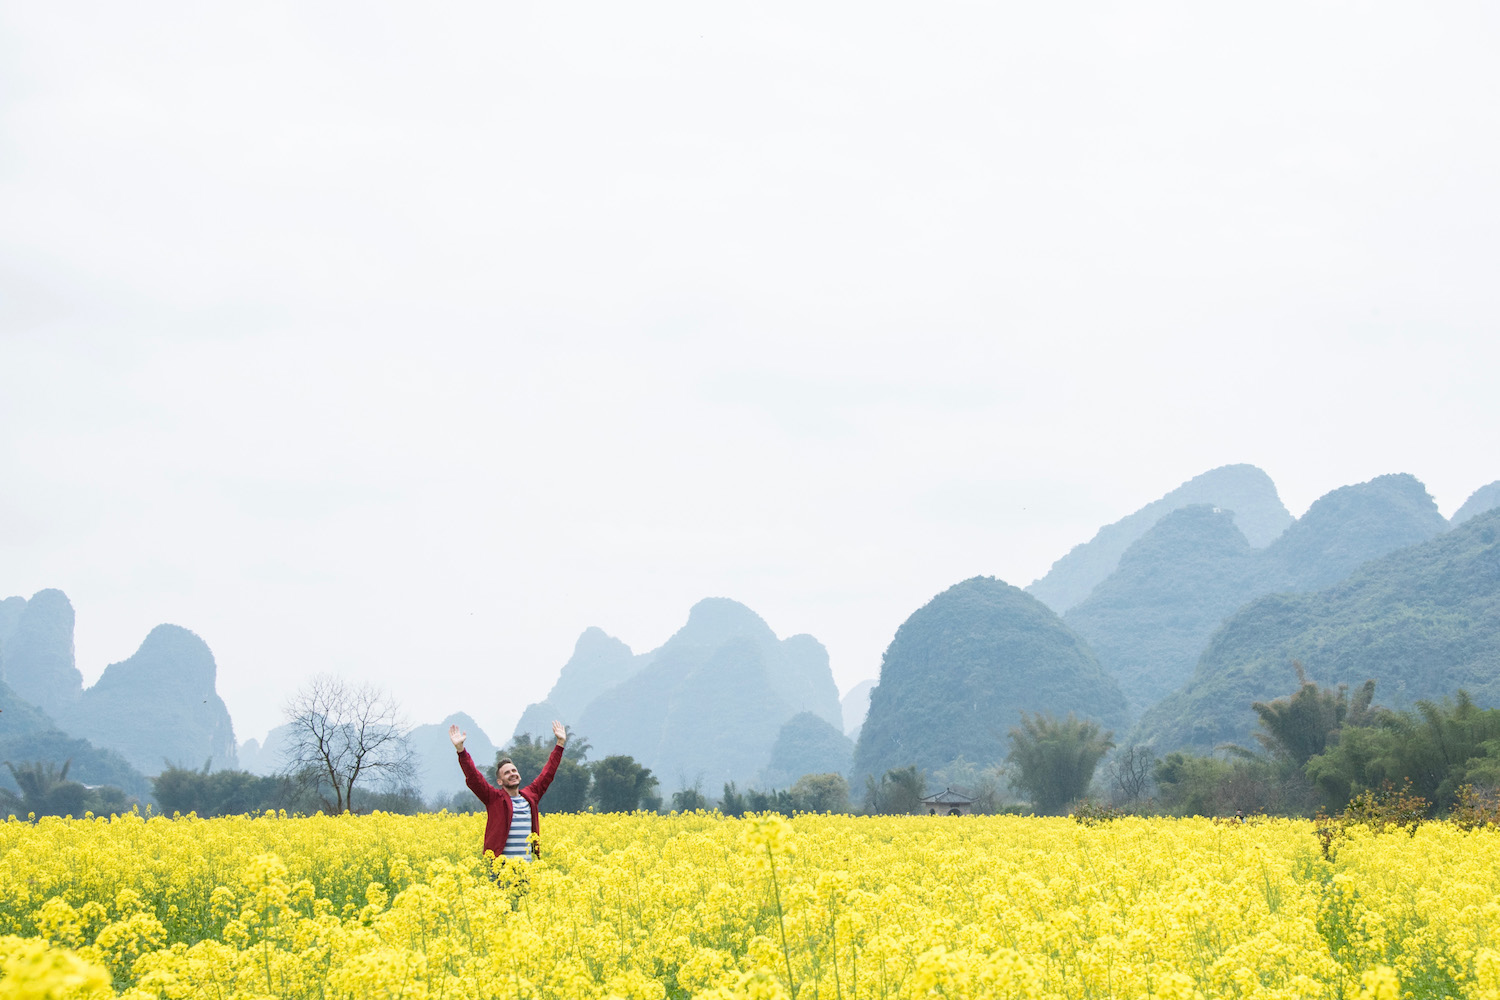 Robert Schrader in Yangshuo, China